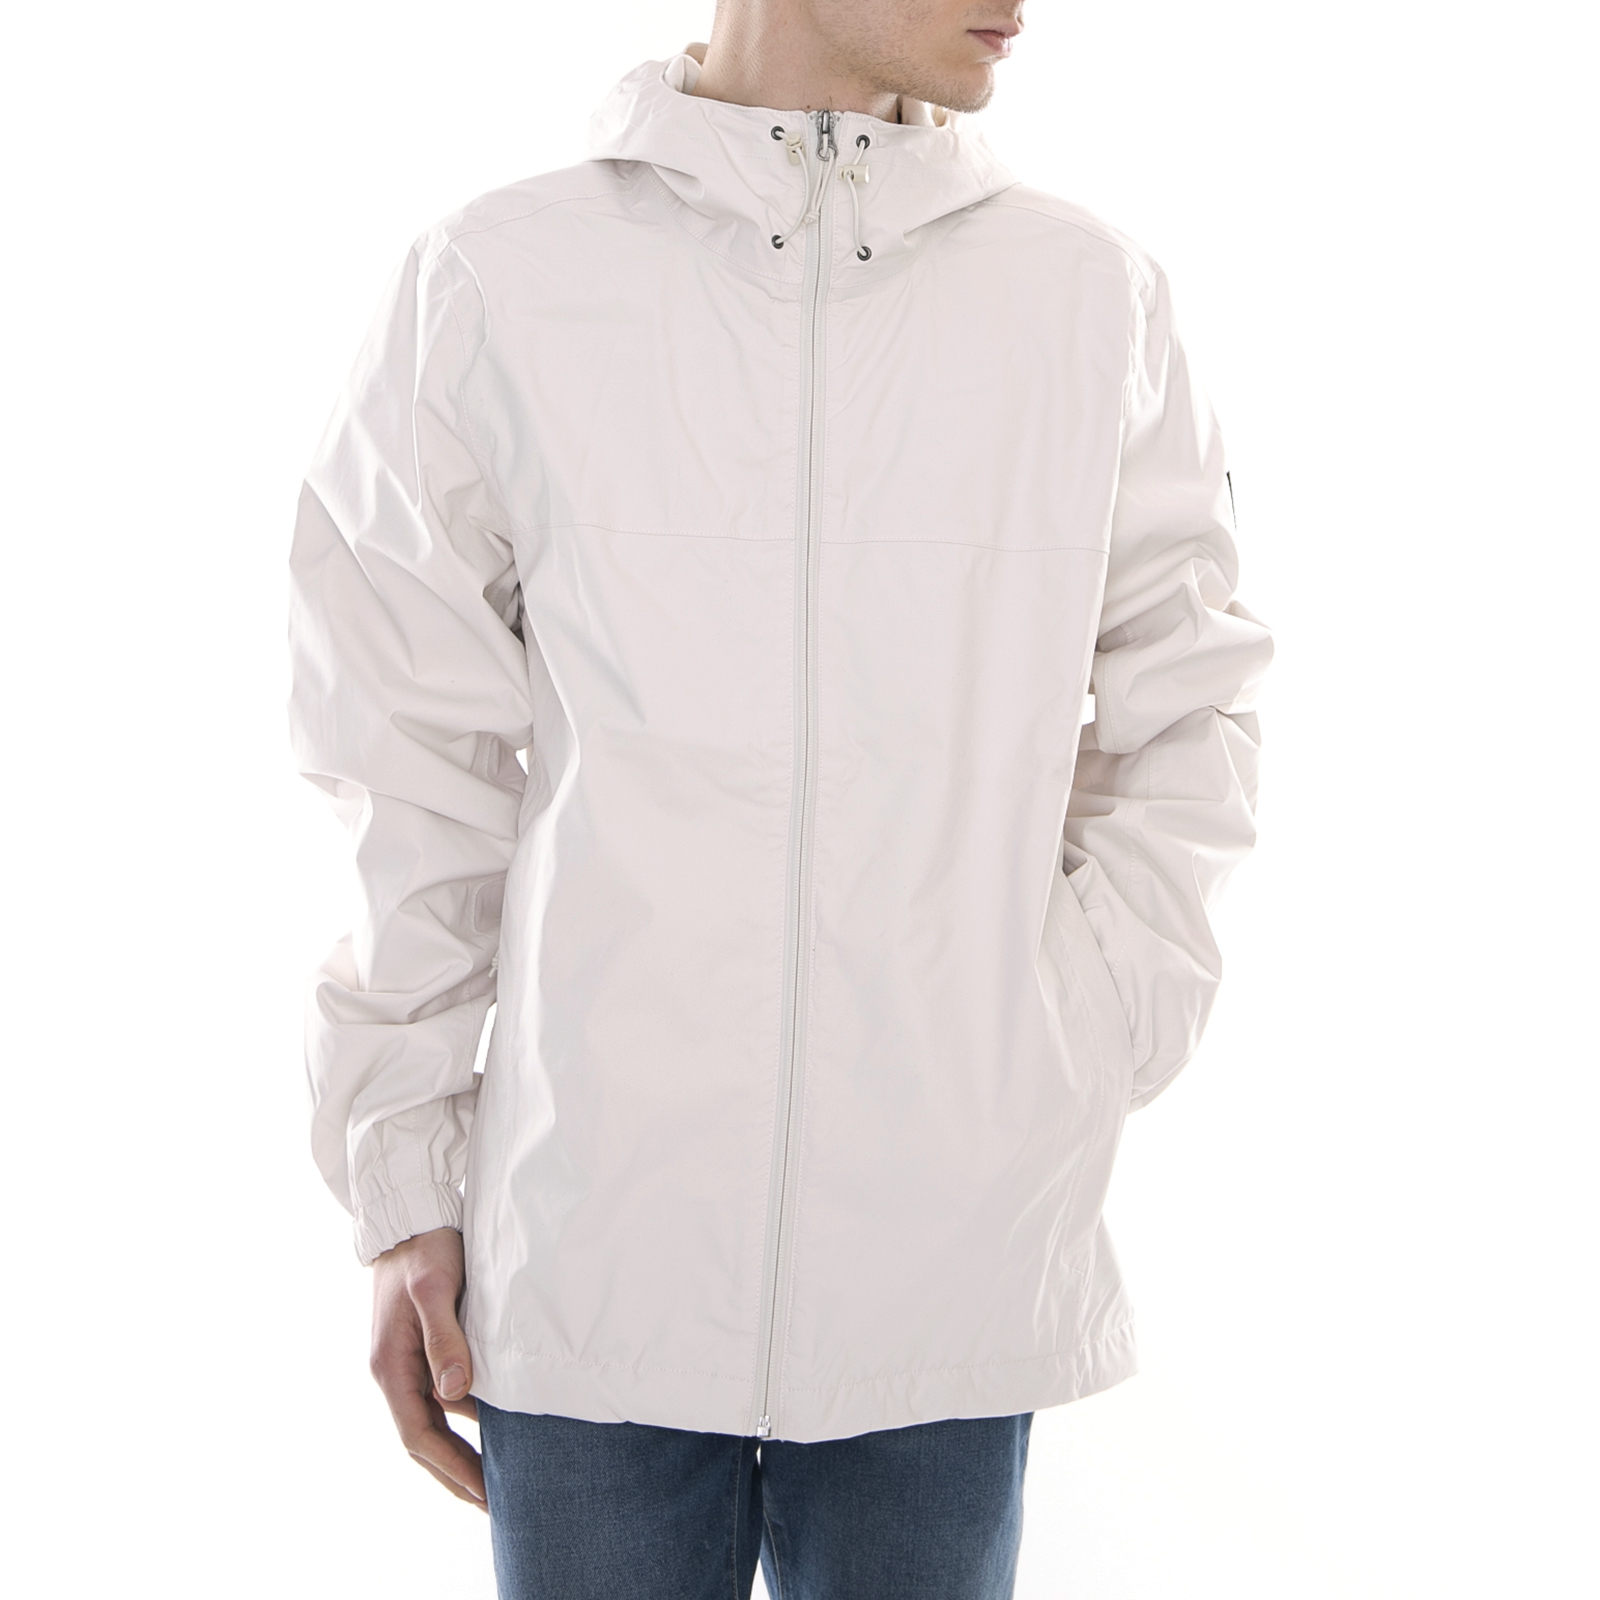 The north face giacche mountain q jacket vintage white bianco  b57a148d7ff1